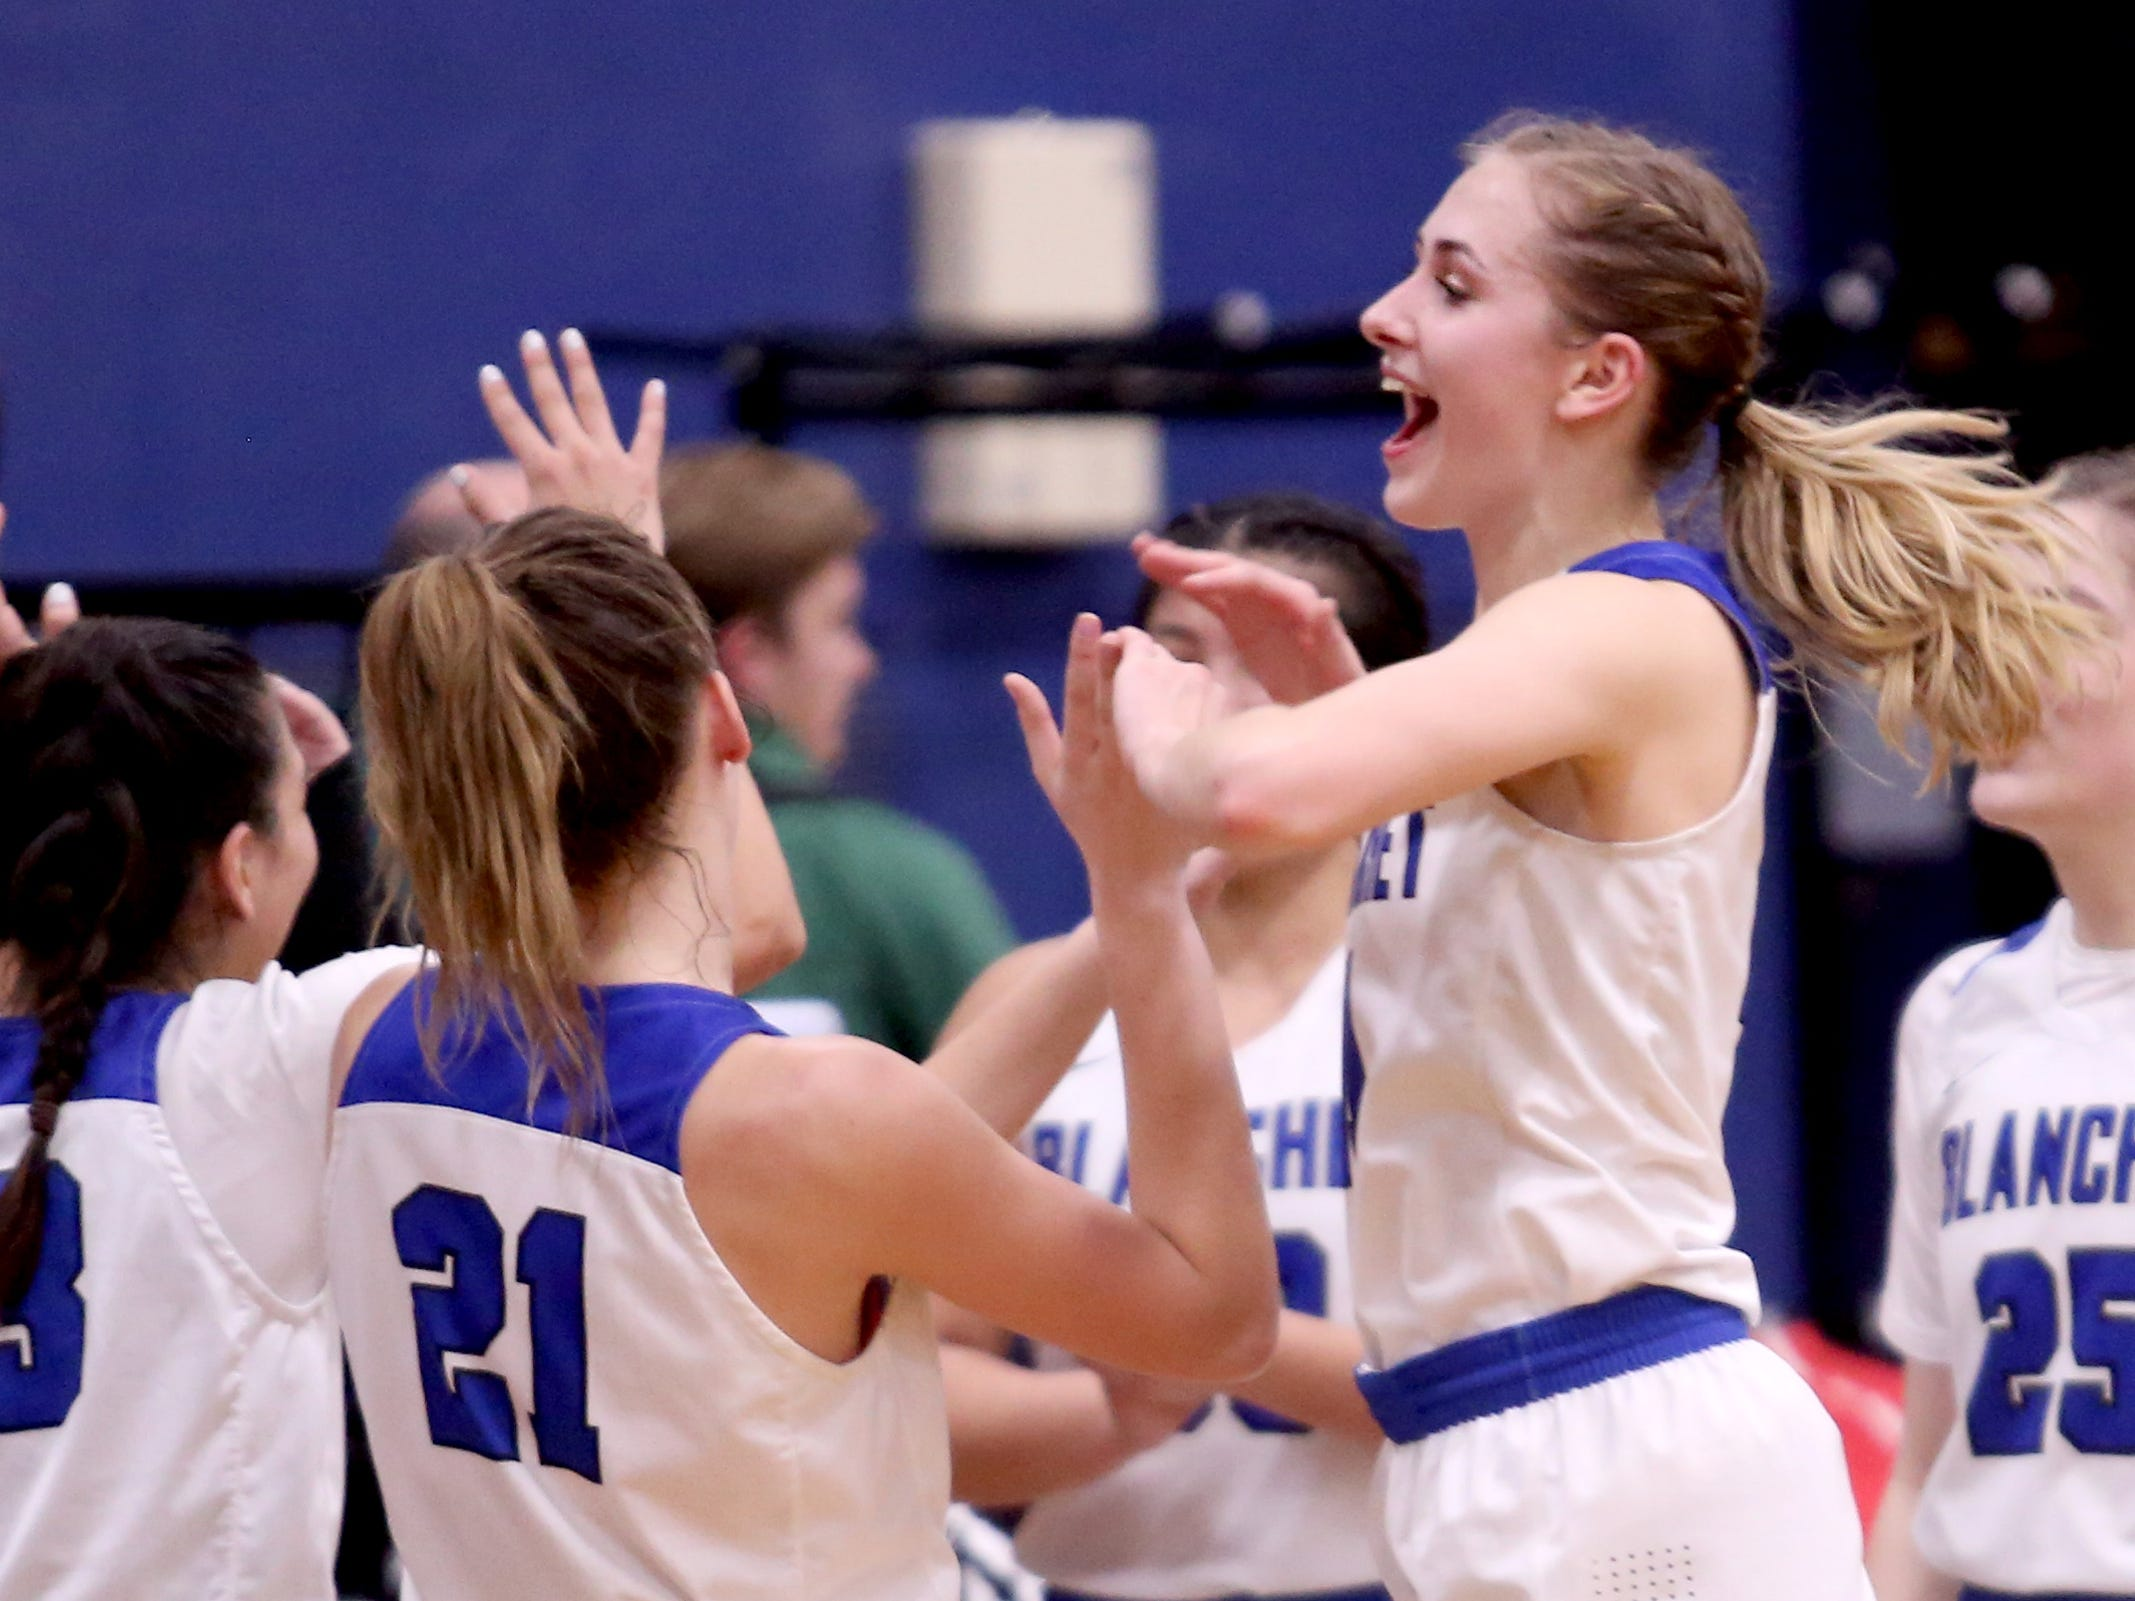 Blanchet Catholic players celebrate their win following the Salem Academy vs. Blanchet Catholic girls basketball game at Blanchet Catholic School in Salem on Friday, Jan. 18, 2019. Blanchet Catholic won the gam 48-40.